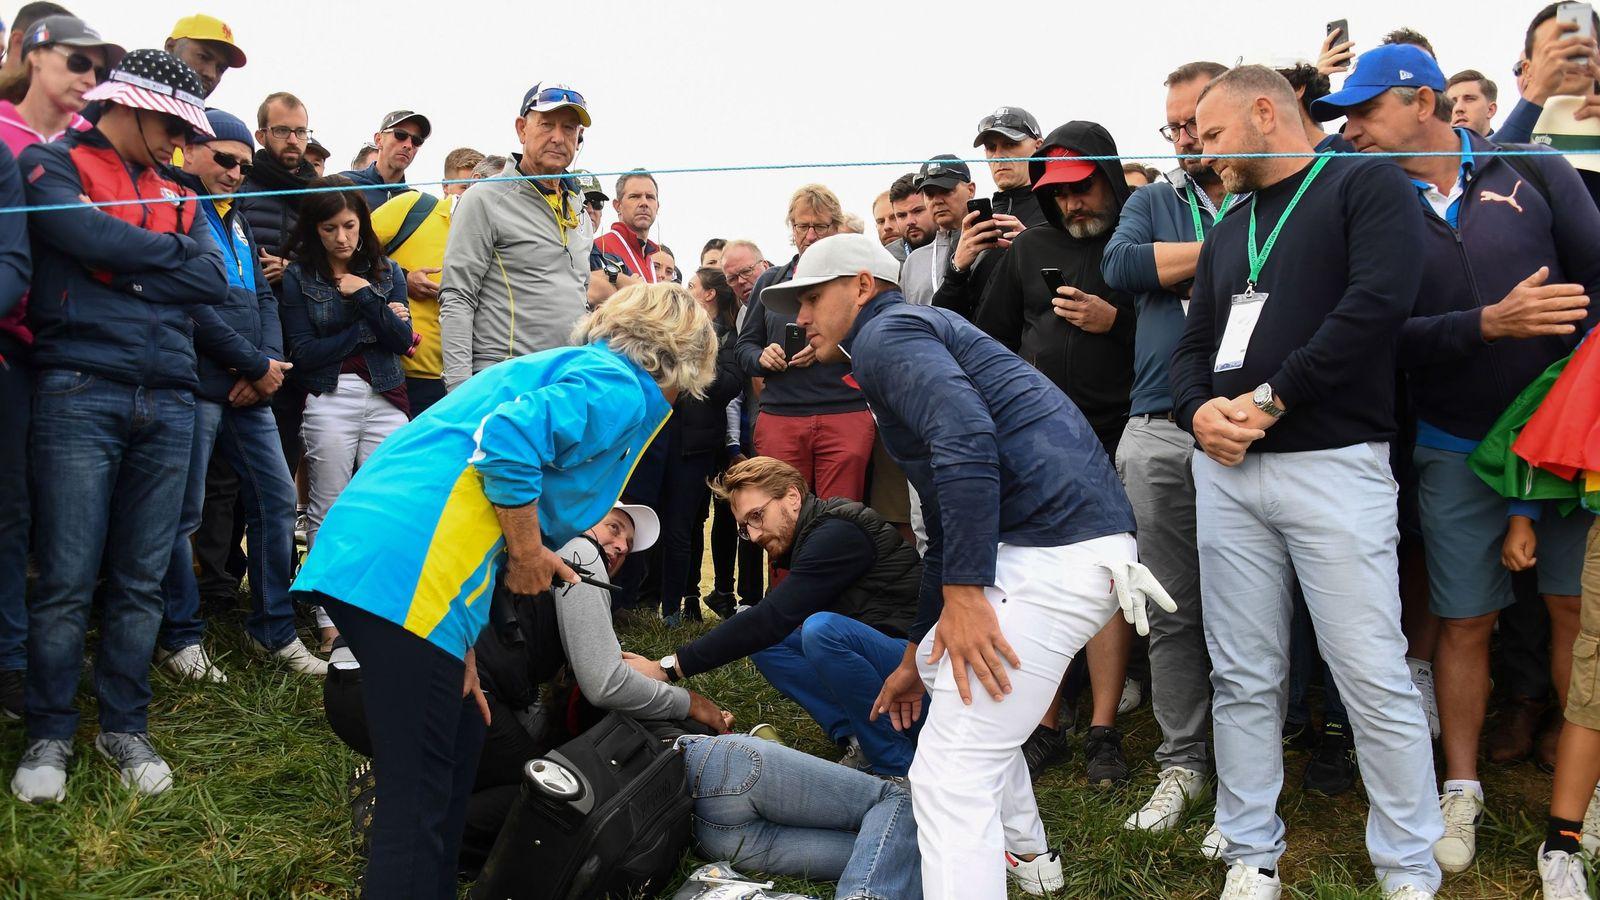 Ryder Cup spectator loses the sight in one eye